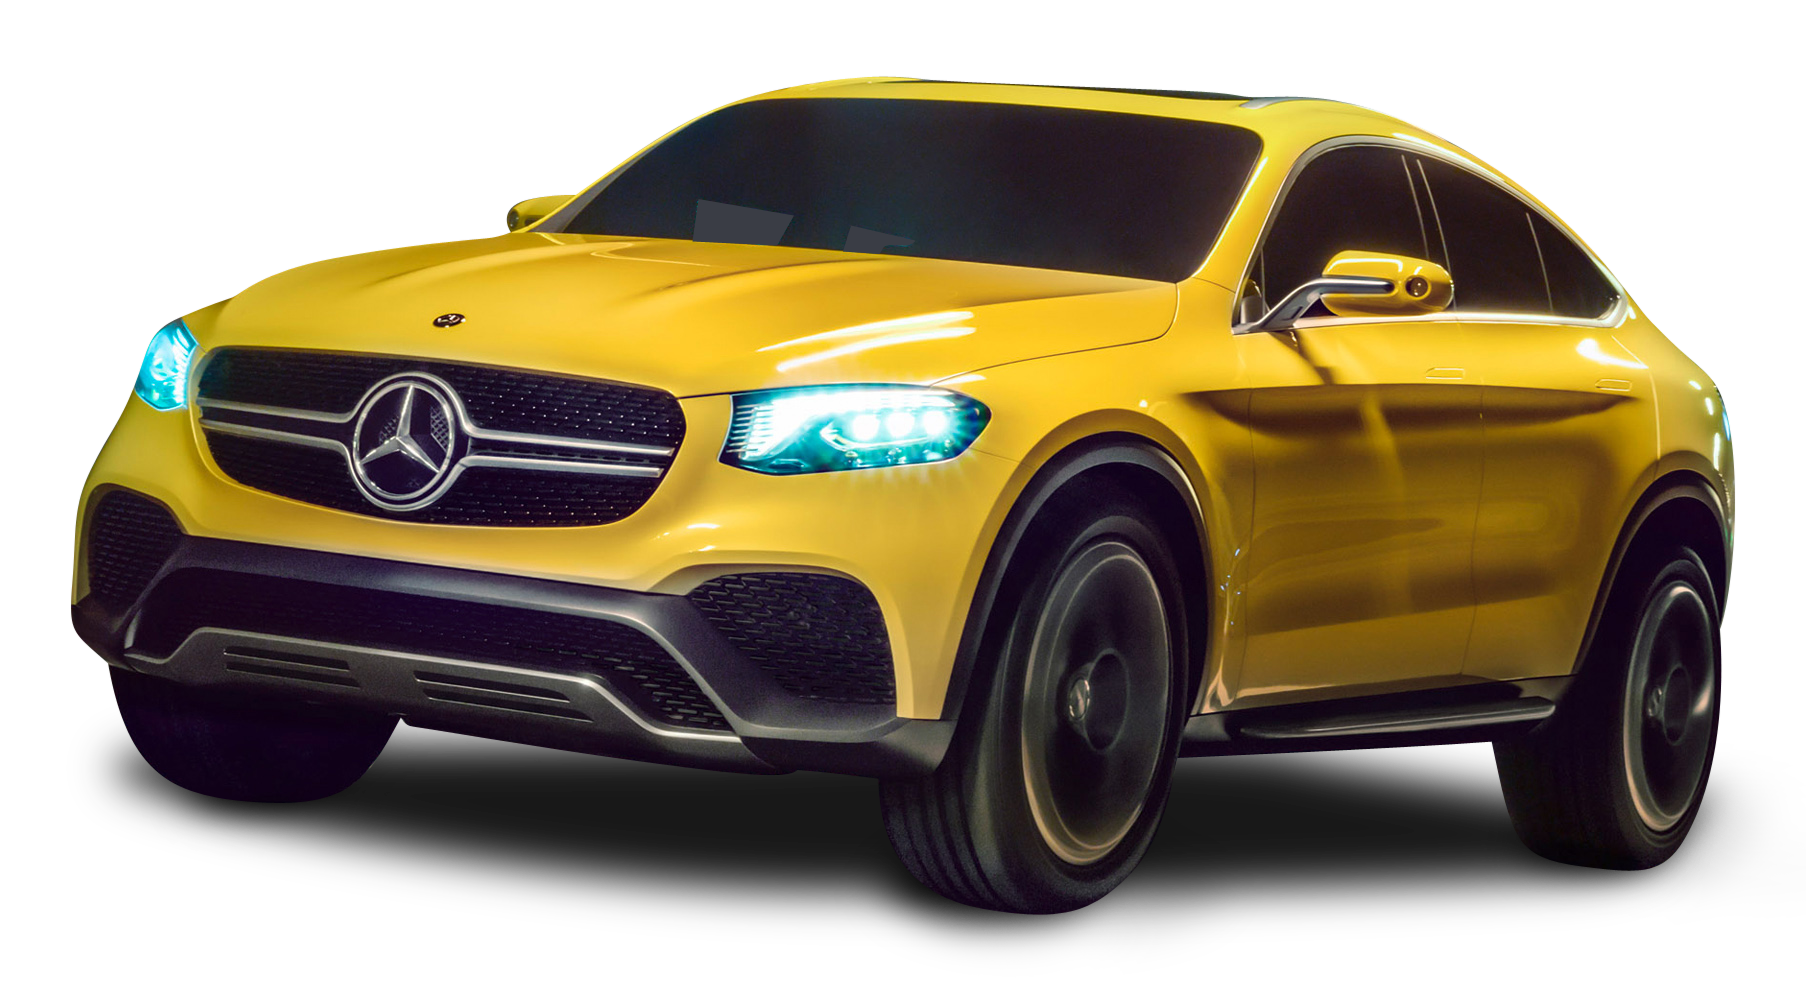 Mercedes Benz GLC Coupe Yellow Car PNG Image